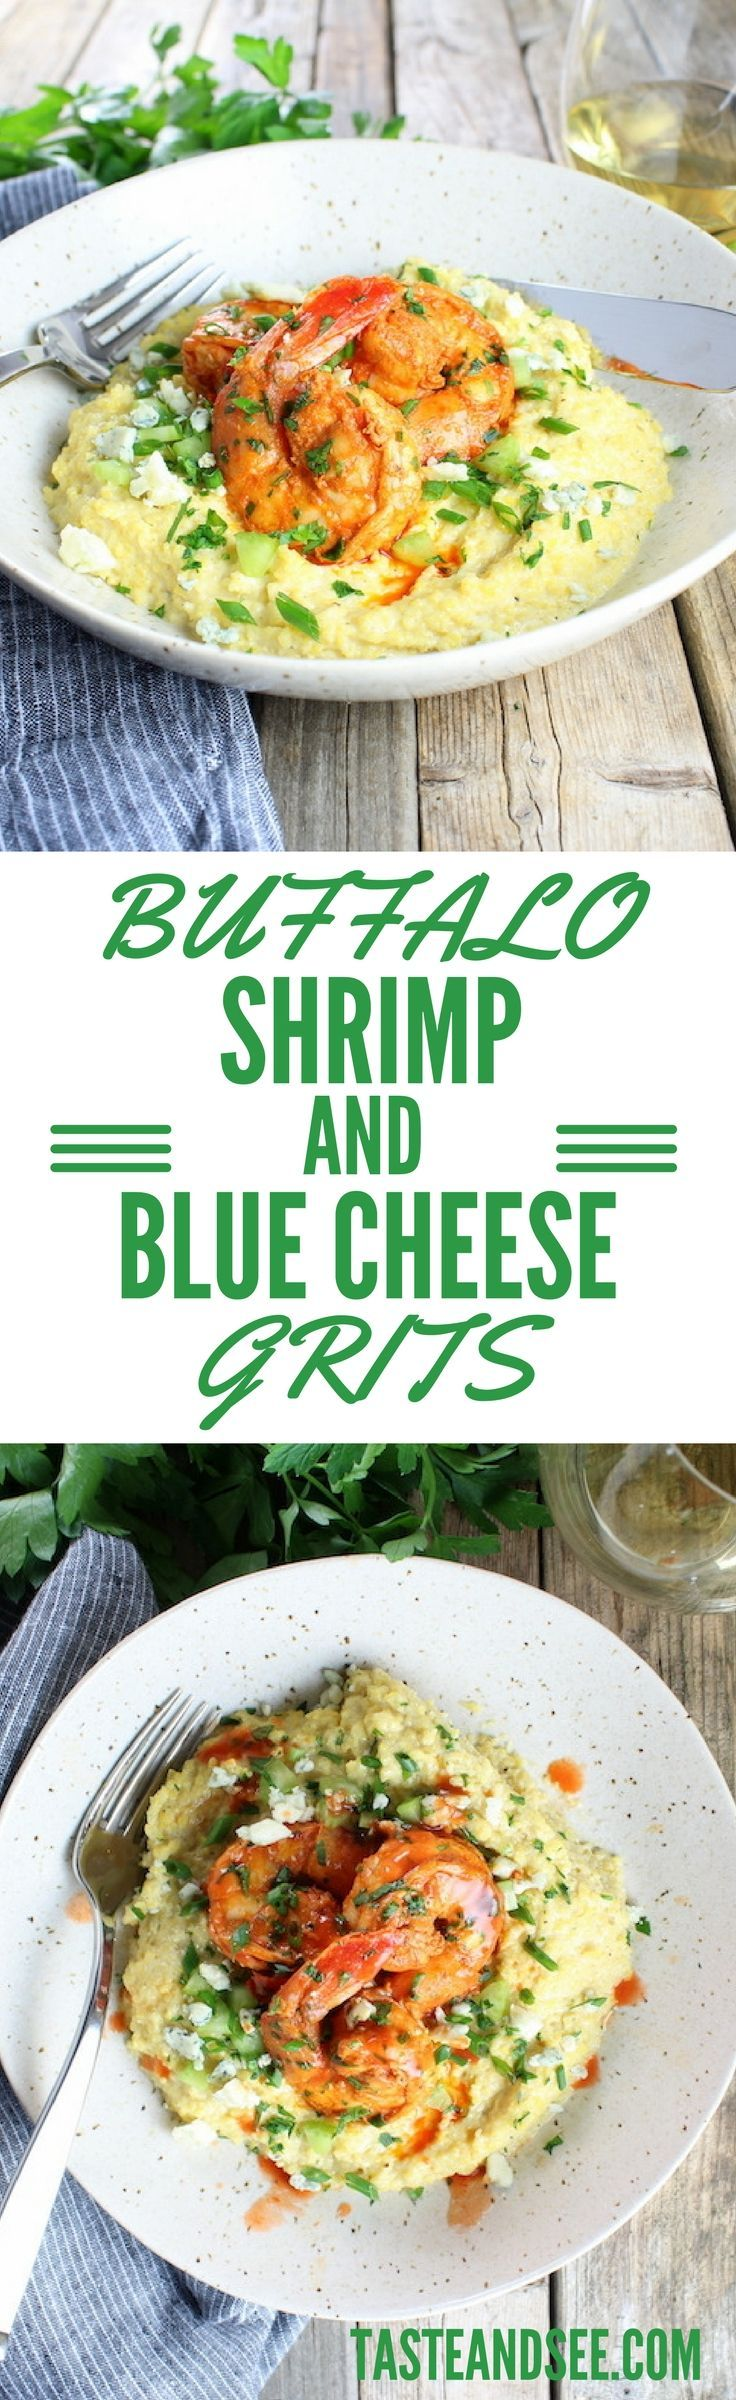 Buffalo Shrimp and Blue Cheese Grits - a marvelous twist on a southern classic. Bold & zesty with spicy seasonings, hot sauce, & creamy blue cheese. #shrimp http://tasteandsee.com